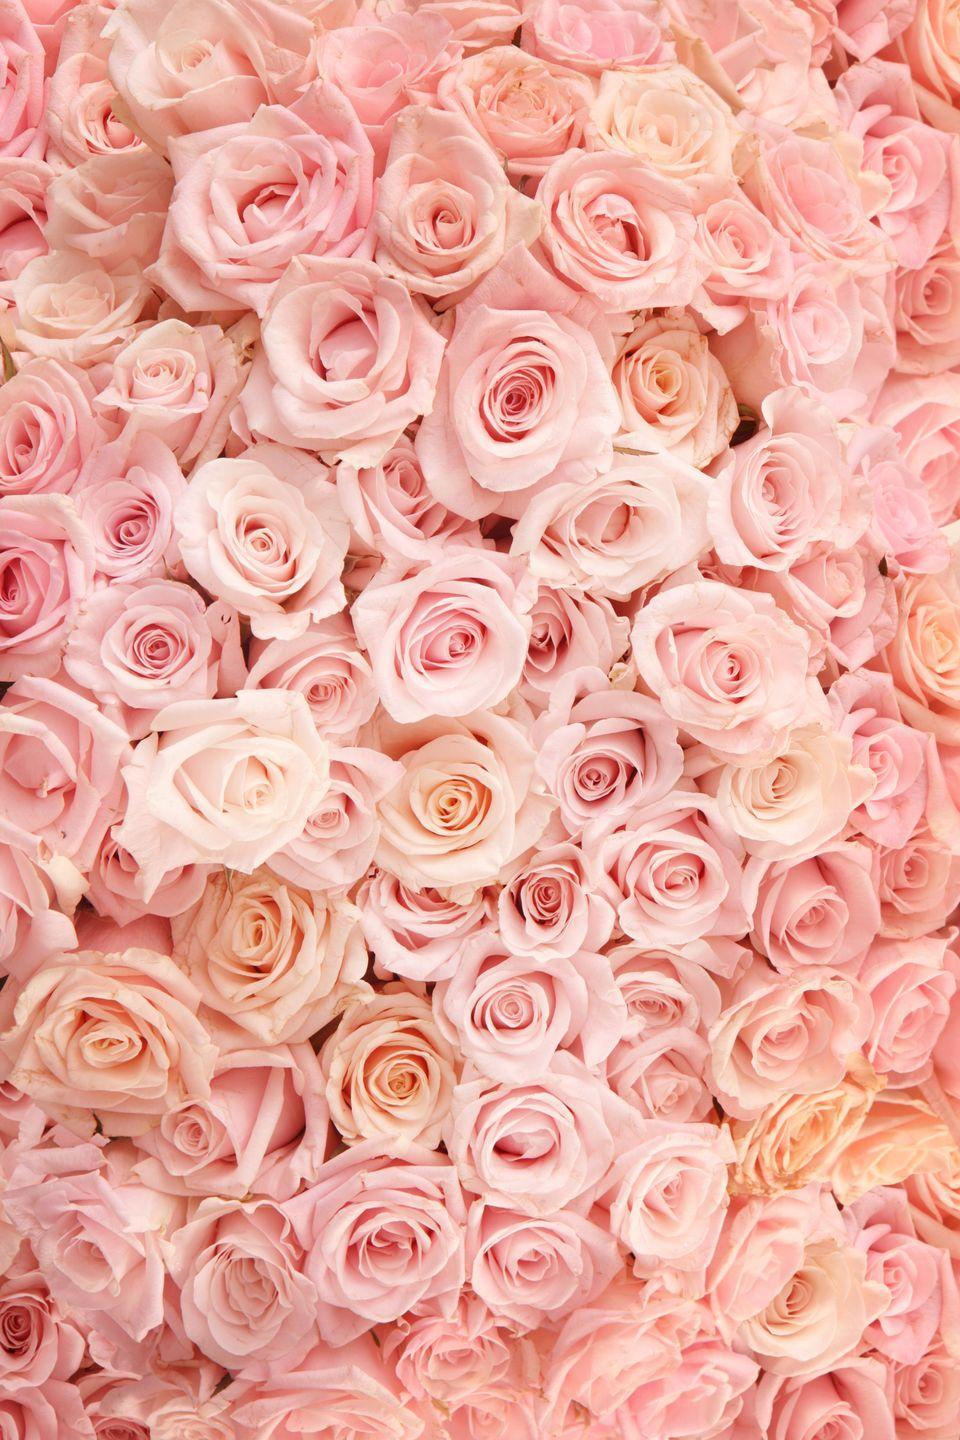 """<p>Deliver the gift of <a href=""""https://www.proflowers.com/blog/rose-colors-and-meanings"""" rel=""""nofollow noopener"""" target=""""_blank"""" data-ylk=""""slk:grace and elegance"""" class=""""link rapid-noclick-resp"""">grace and elegance</a> when you send your sweetheart these pretty blooms.</p><p><a class=""""link rapid-noclick-resp"""" href=""""https://go.redirectingat.com?id=74968X1596630&url=https%3A%2F%2Fwww.1800flowers.com%2Fpretty-in-pink-rose-bouquet-104958&sref=https%3A%2F%2Fwww.goodhousekeeping.com%2Fholidays%2Fvalentines-day-ideas%2Fg1352%2Frose-color-meanings%2F"""" rel=""""nofollow noopener"""" target=""""_blank"""" data-ylk=""""slk:SHOP PINK ROSES"""">SHOP PINK ROSES</a> </p>"""